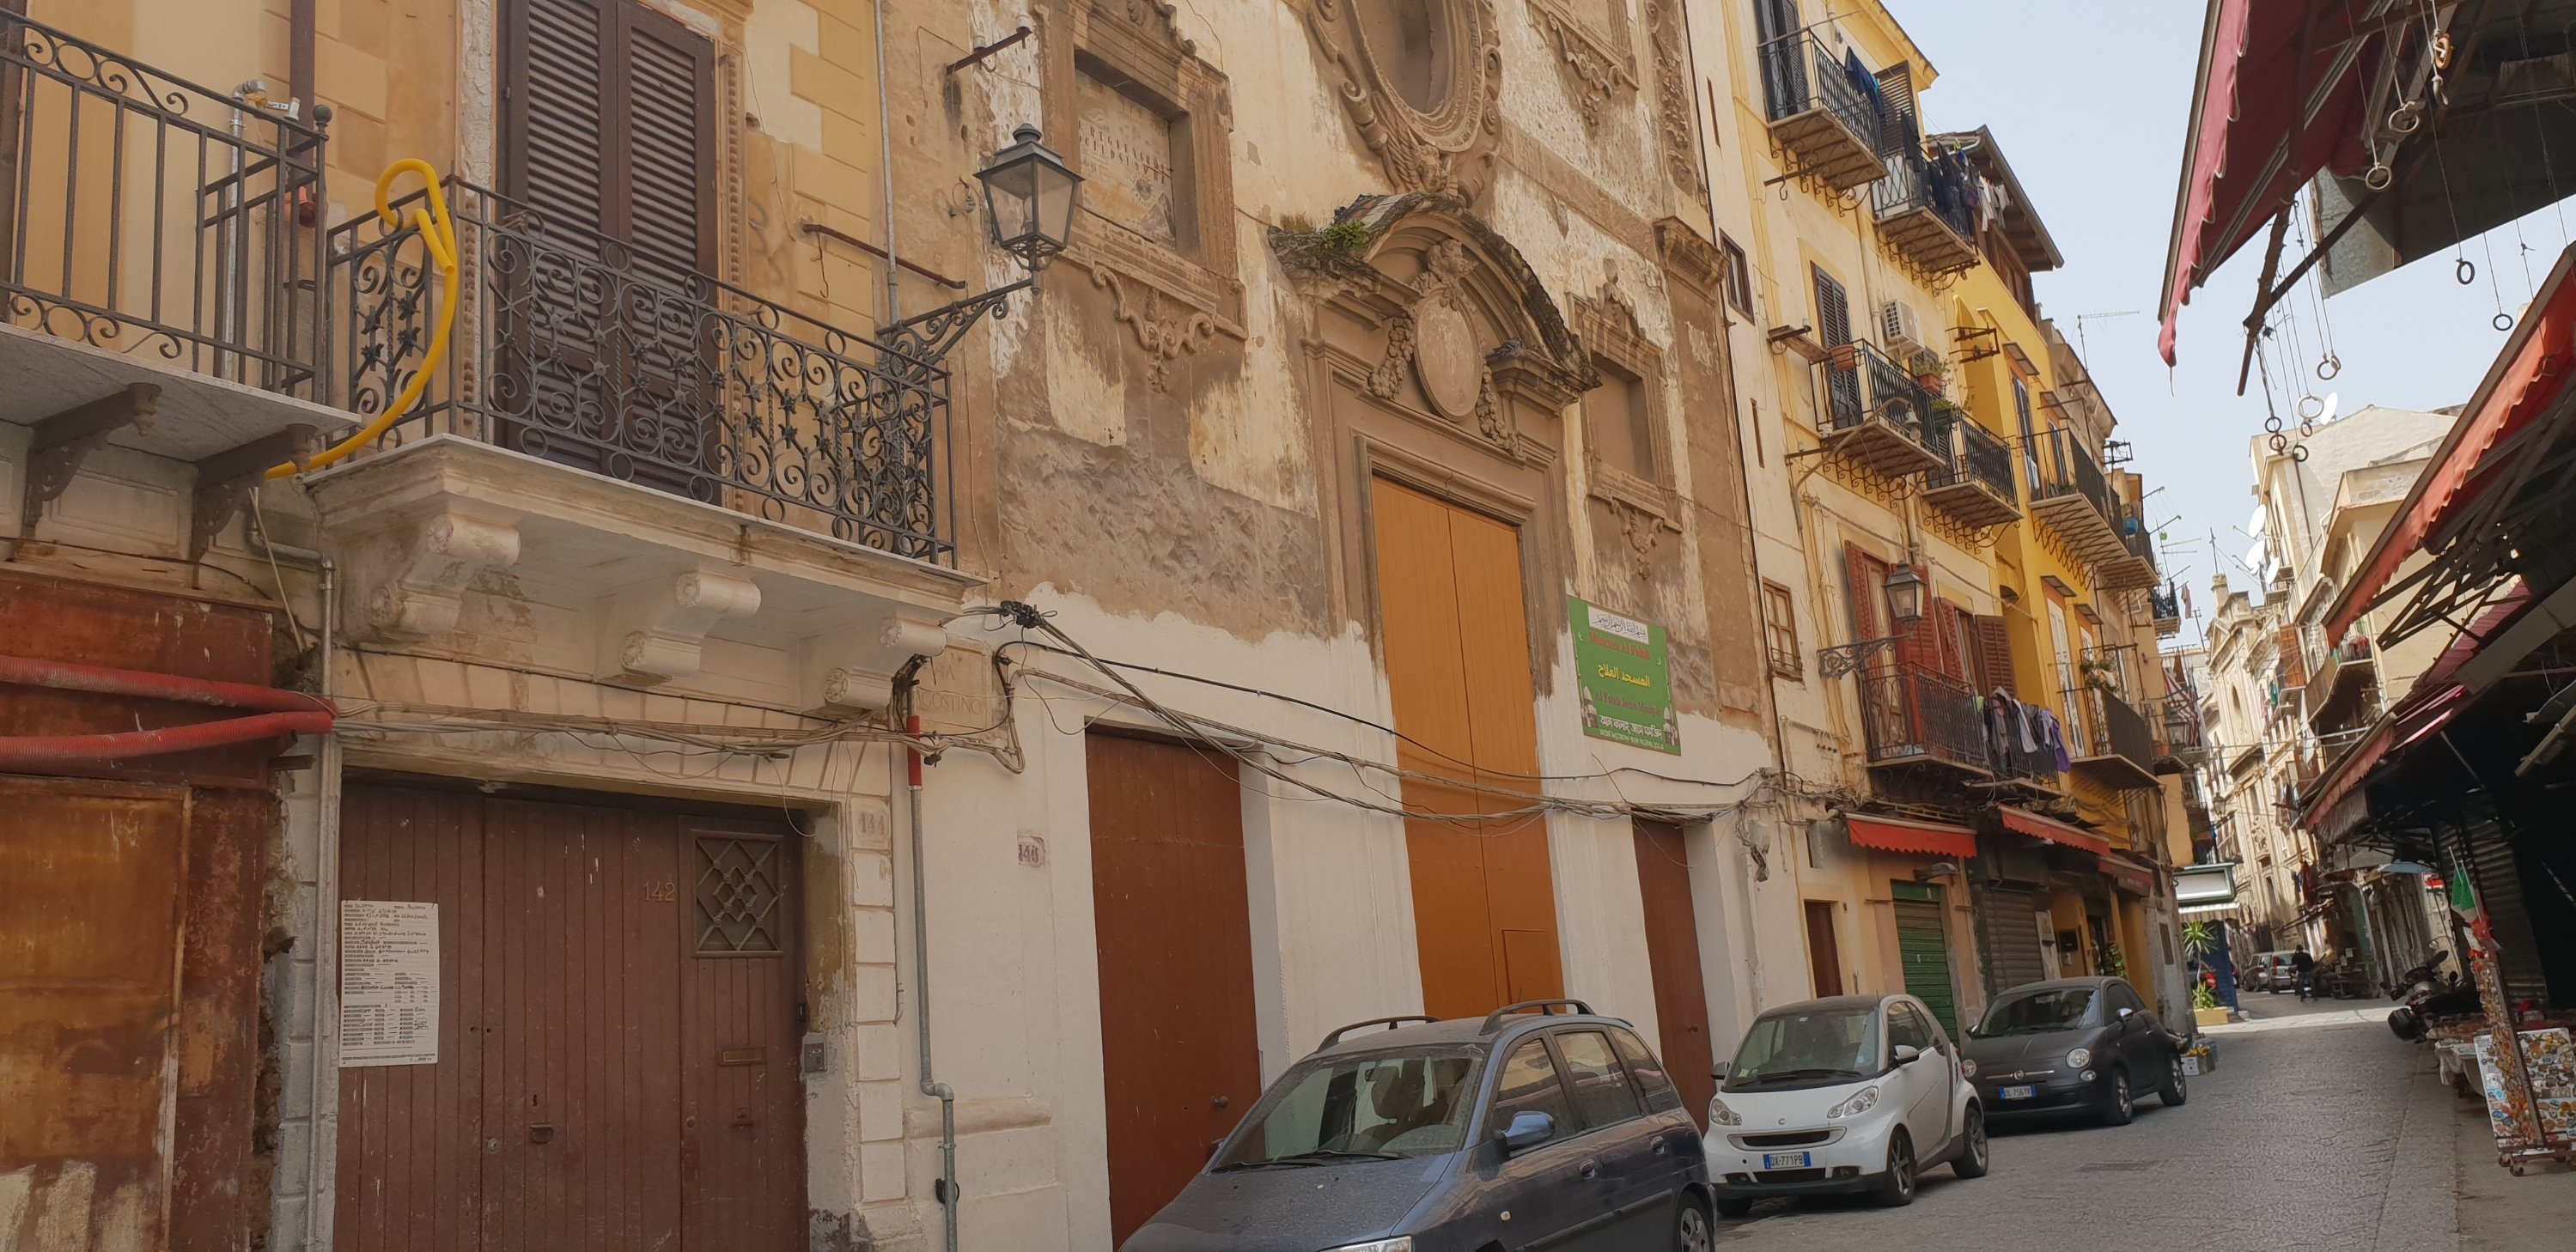 The back streets of Palermo are a delicious mixture of Baroque architecture, tiny cars (usually dented on all corners) and vibrancy